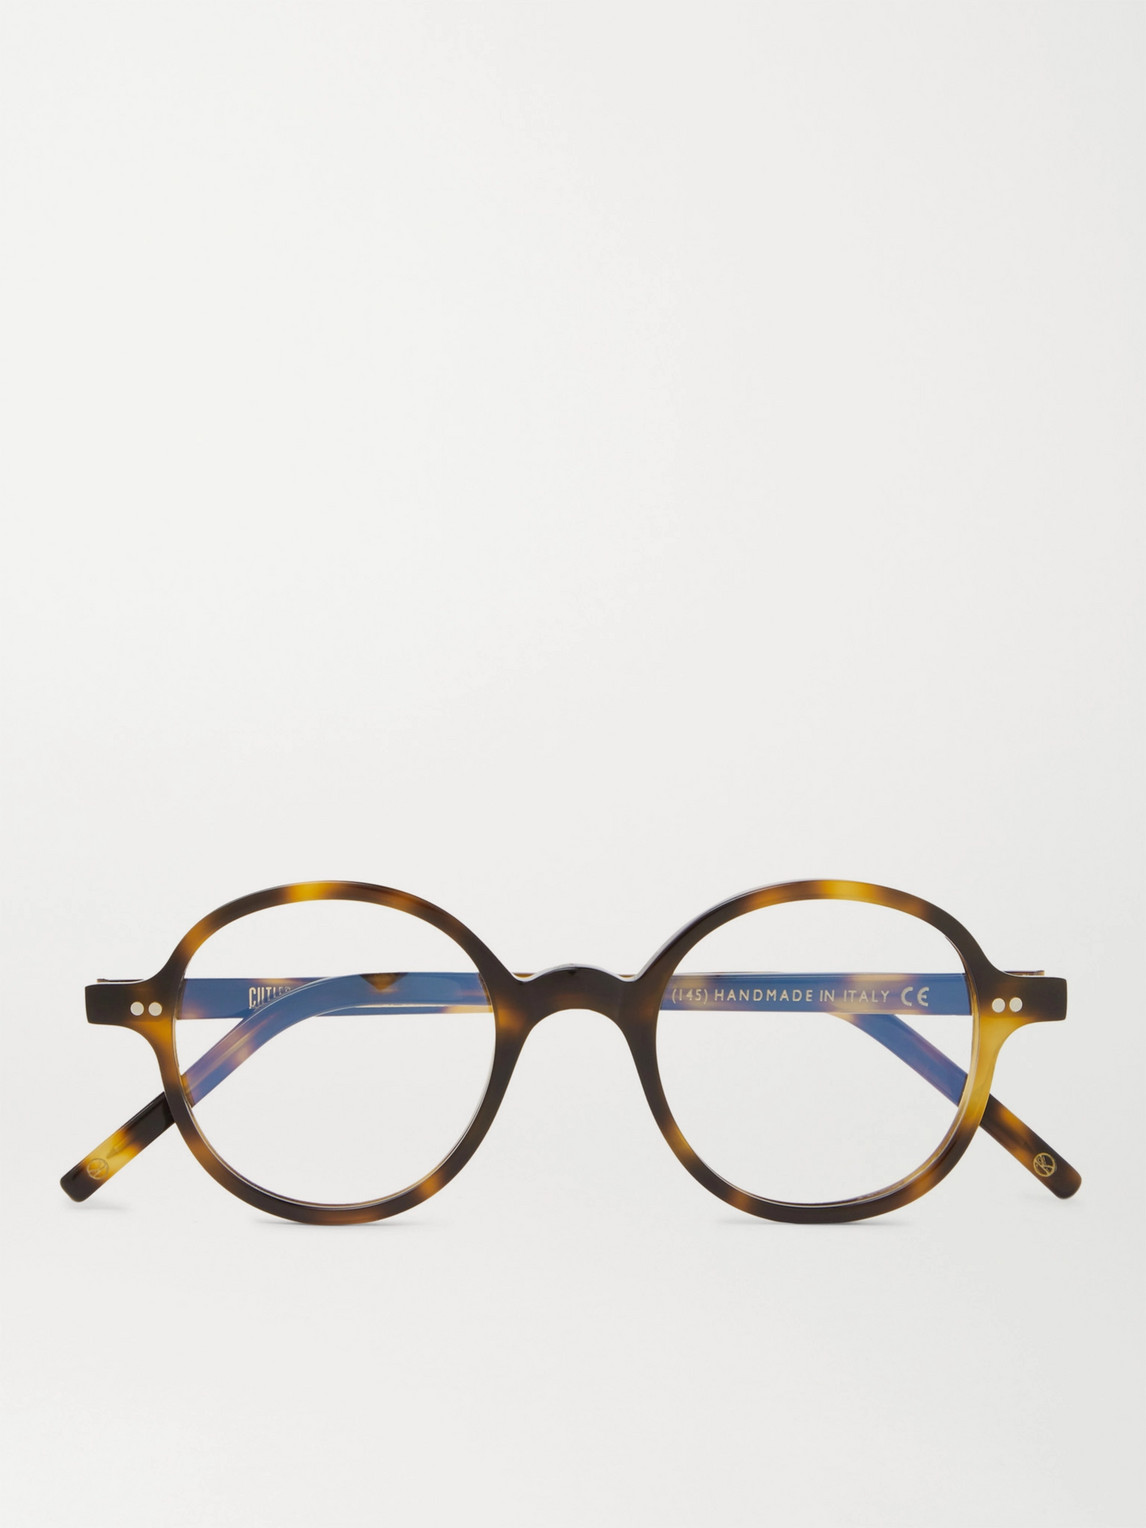 Kingsman Cutler And Gross Round-frame Tortoiseshell Acetate Optical Glasses